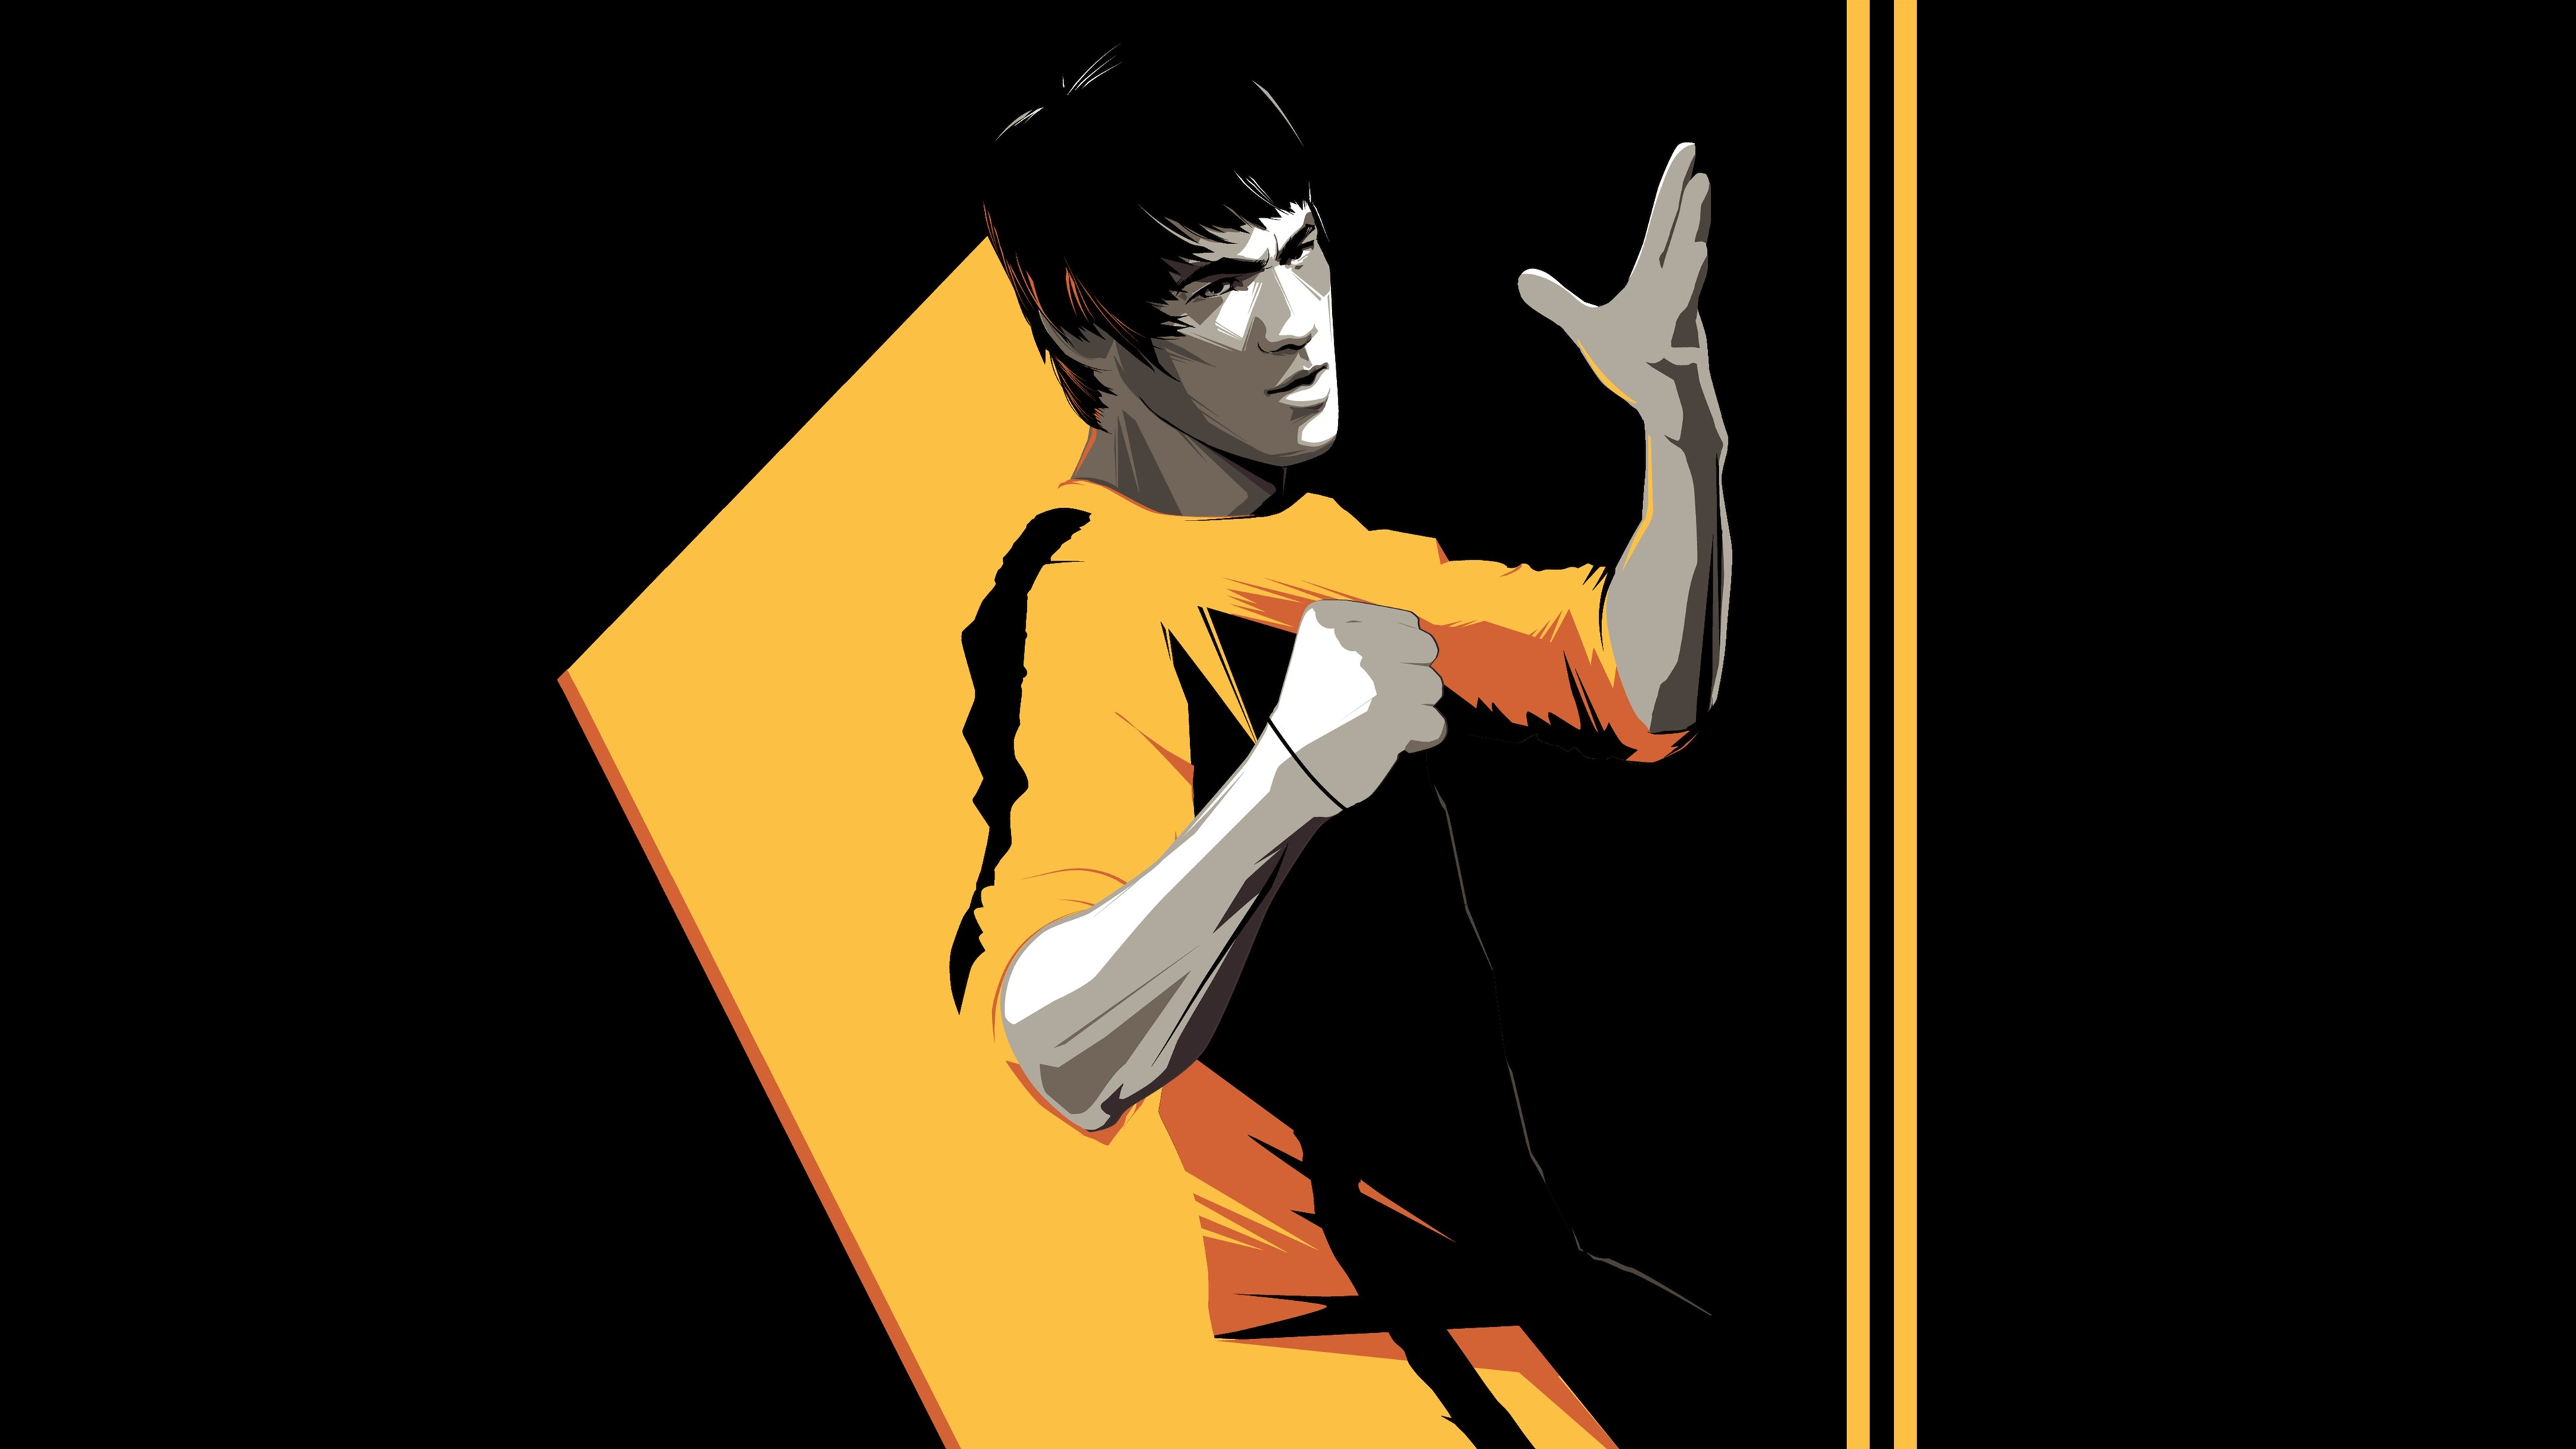 Wallpaper Bruce Lee Kung Fu Star Art Picture 3840x2160 Uhd 4k Picture Image